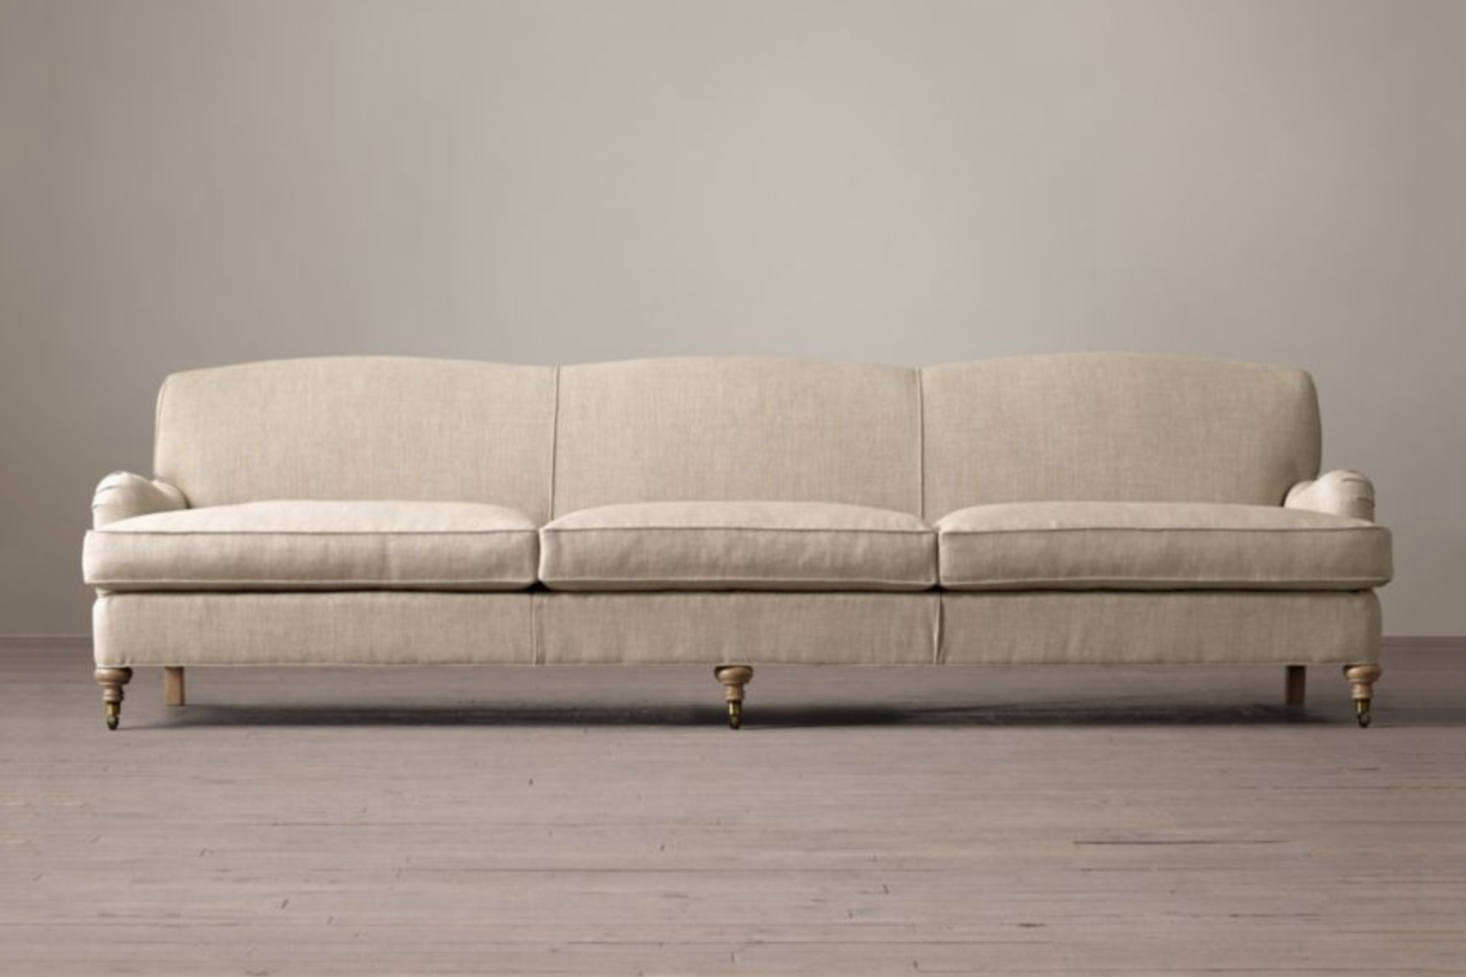 Remarkable 10 Easy Pieces The English Roll Arm Sofa Remodelista Download Free Architecture Designs Crovemadebymaigaardcom